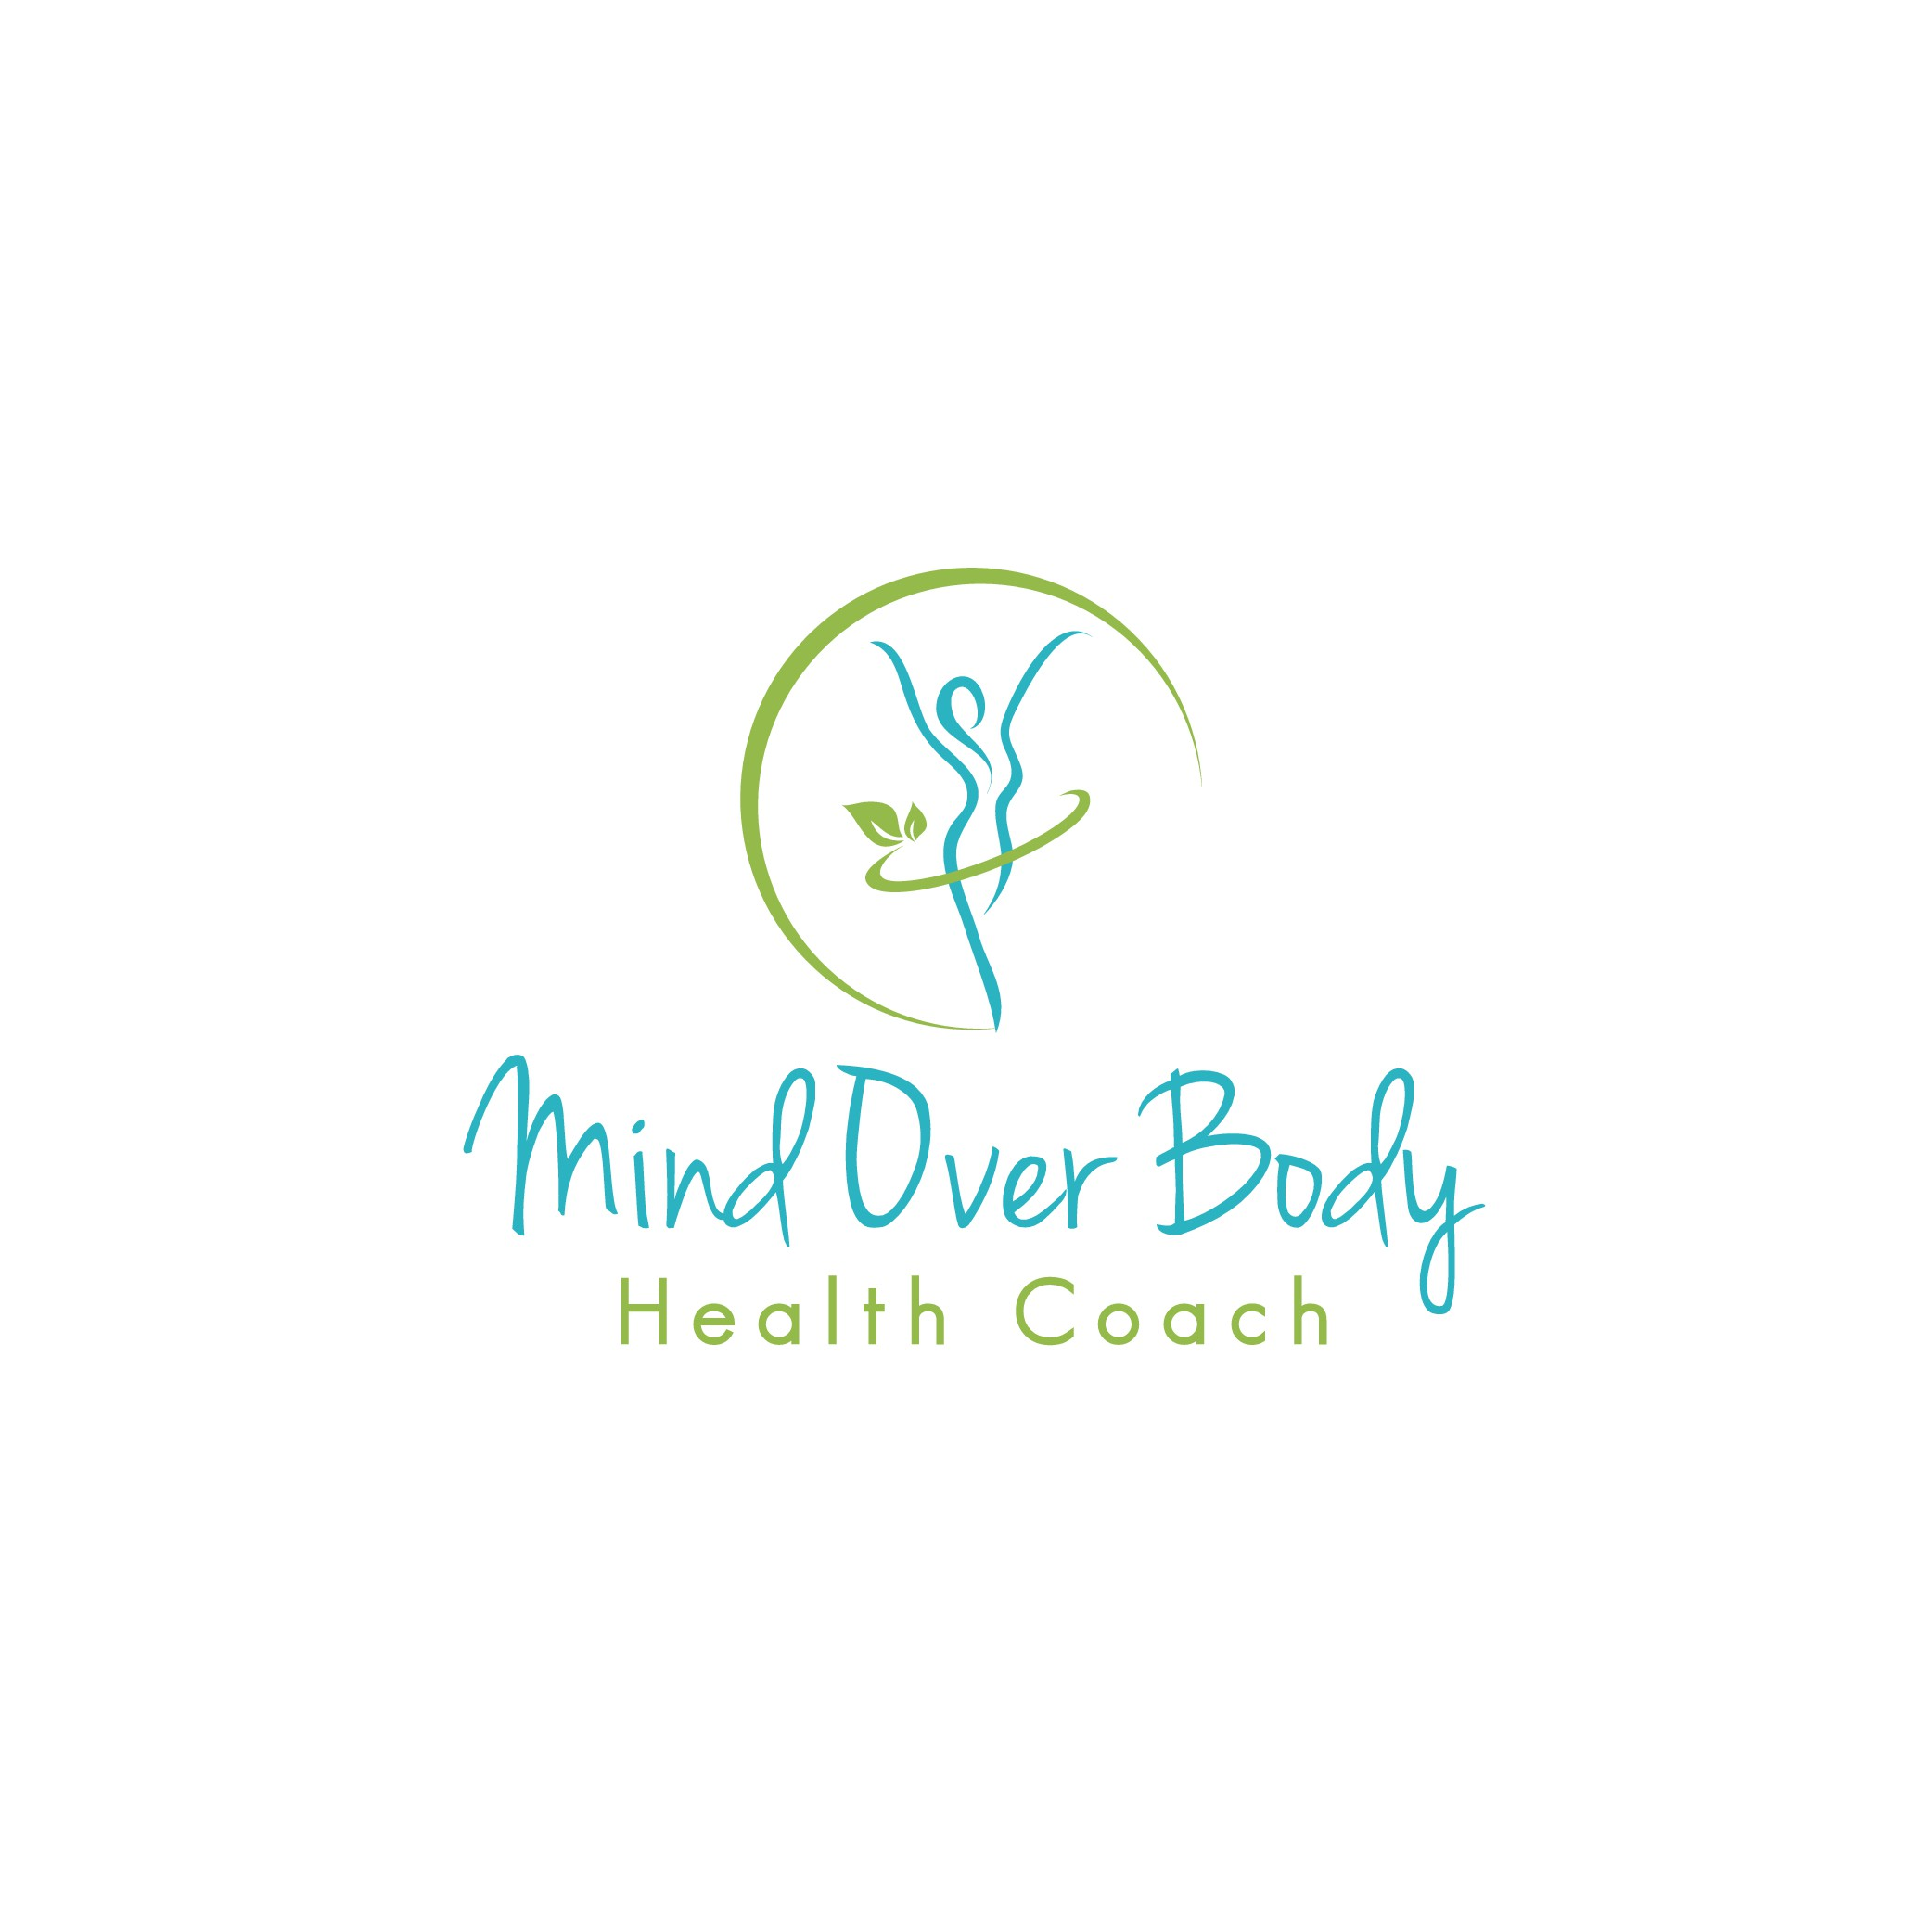 Mind Over Body Health Coach - helping others achieve their health goals